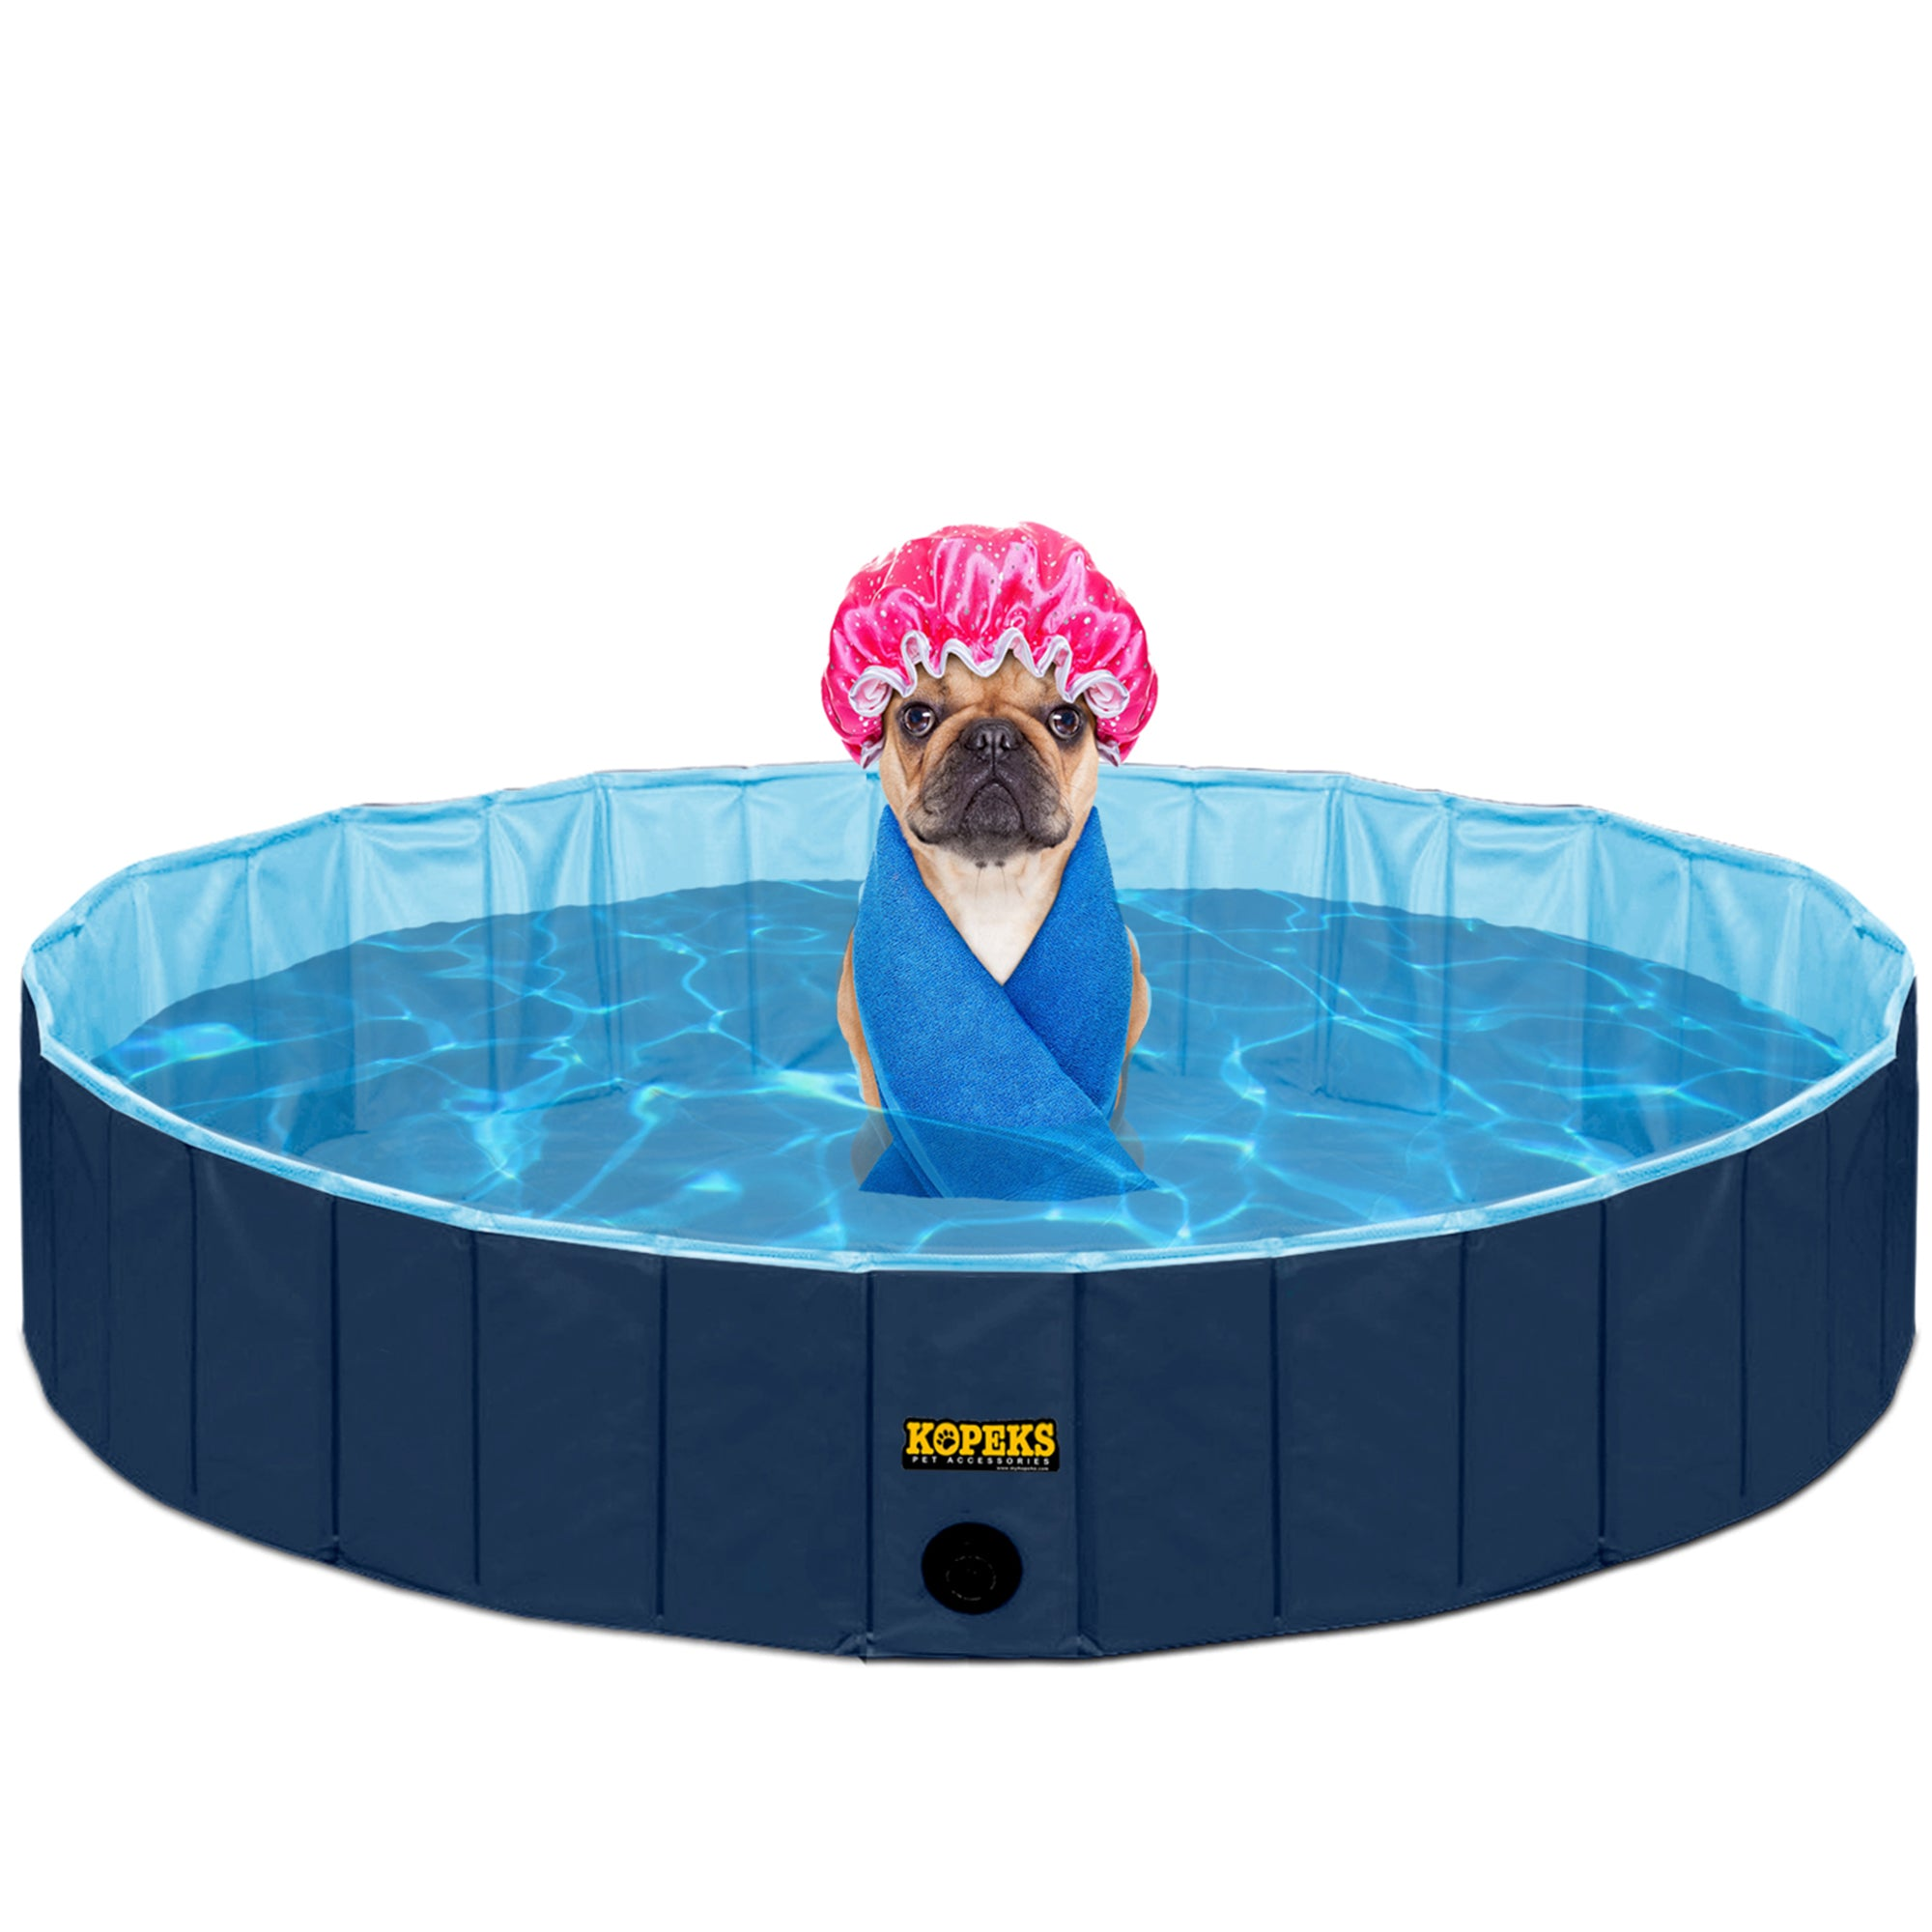 Pet Pool Outdoor Swimming Pool Bathing Tub Navy Size Extra Large Kopeks